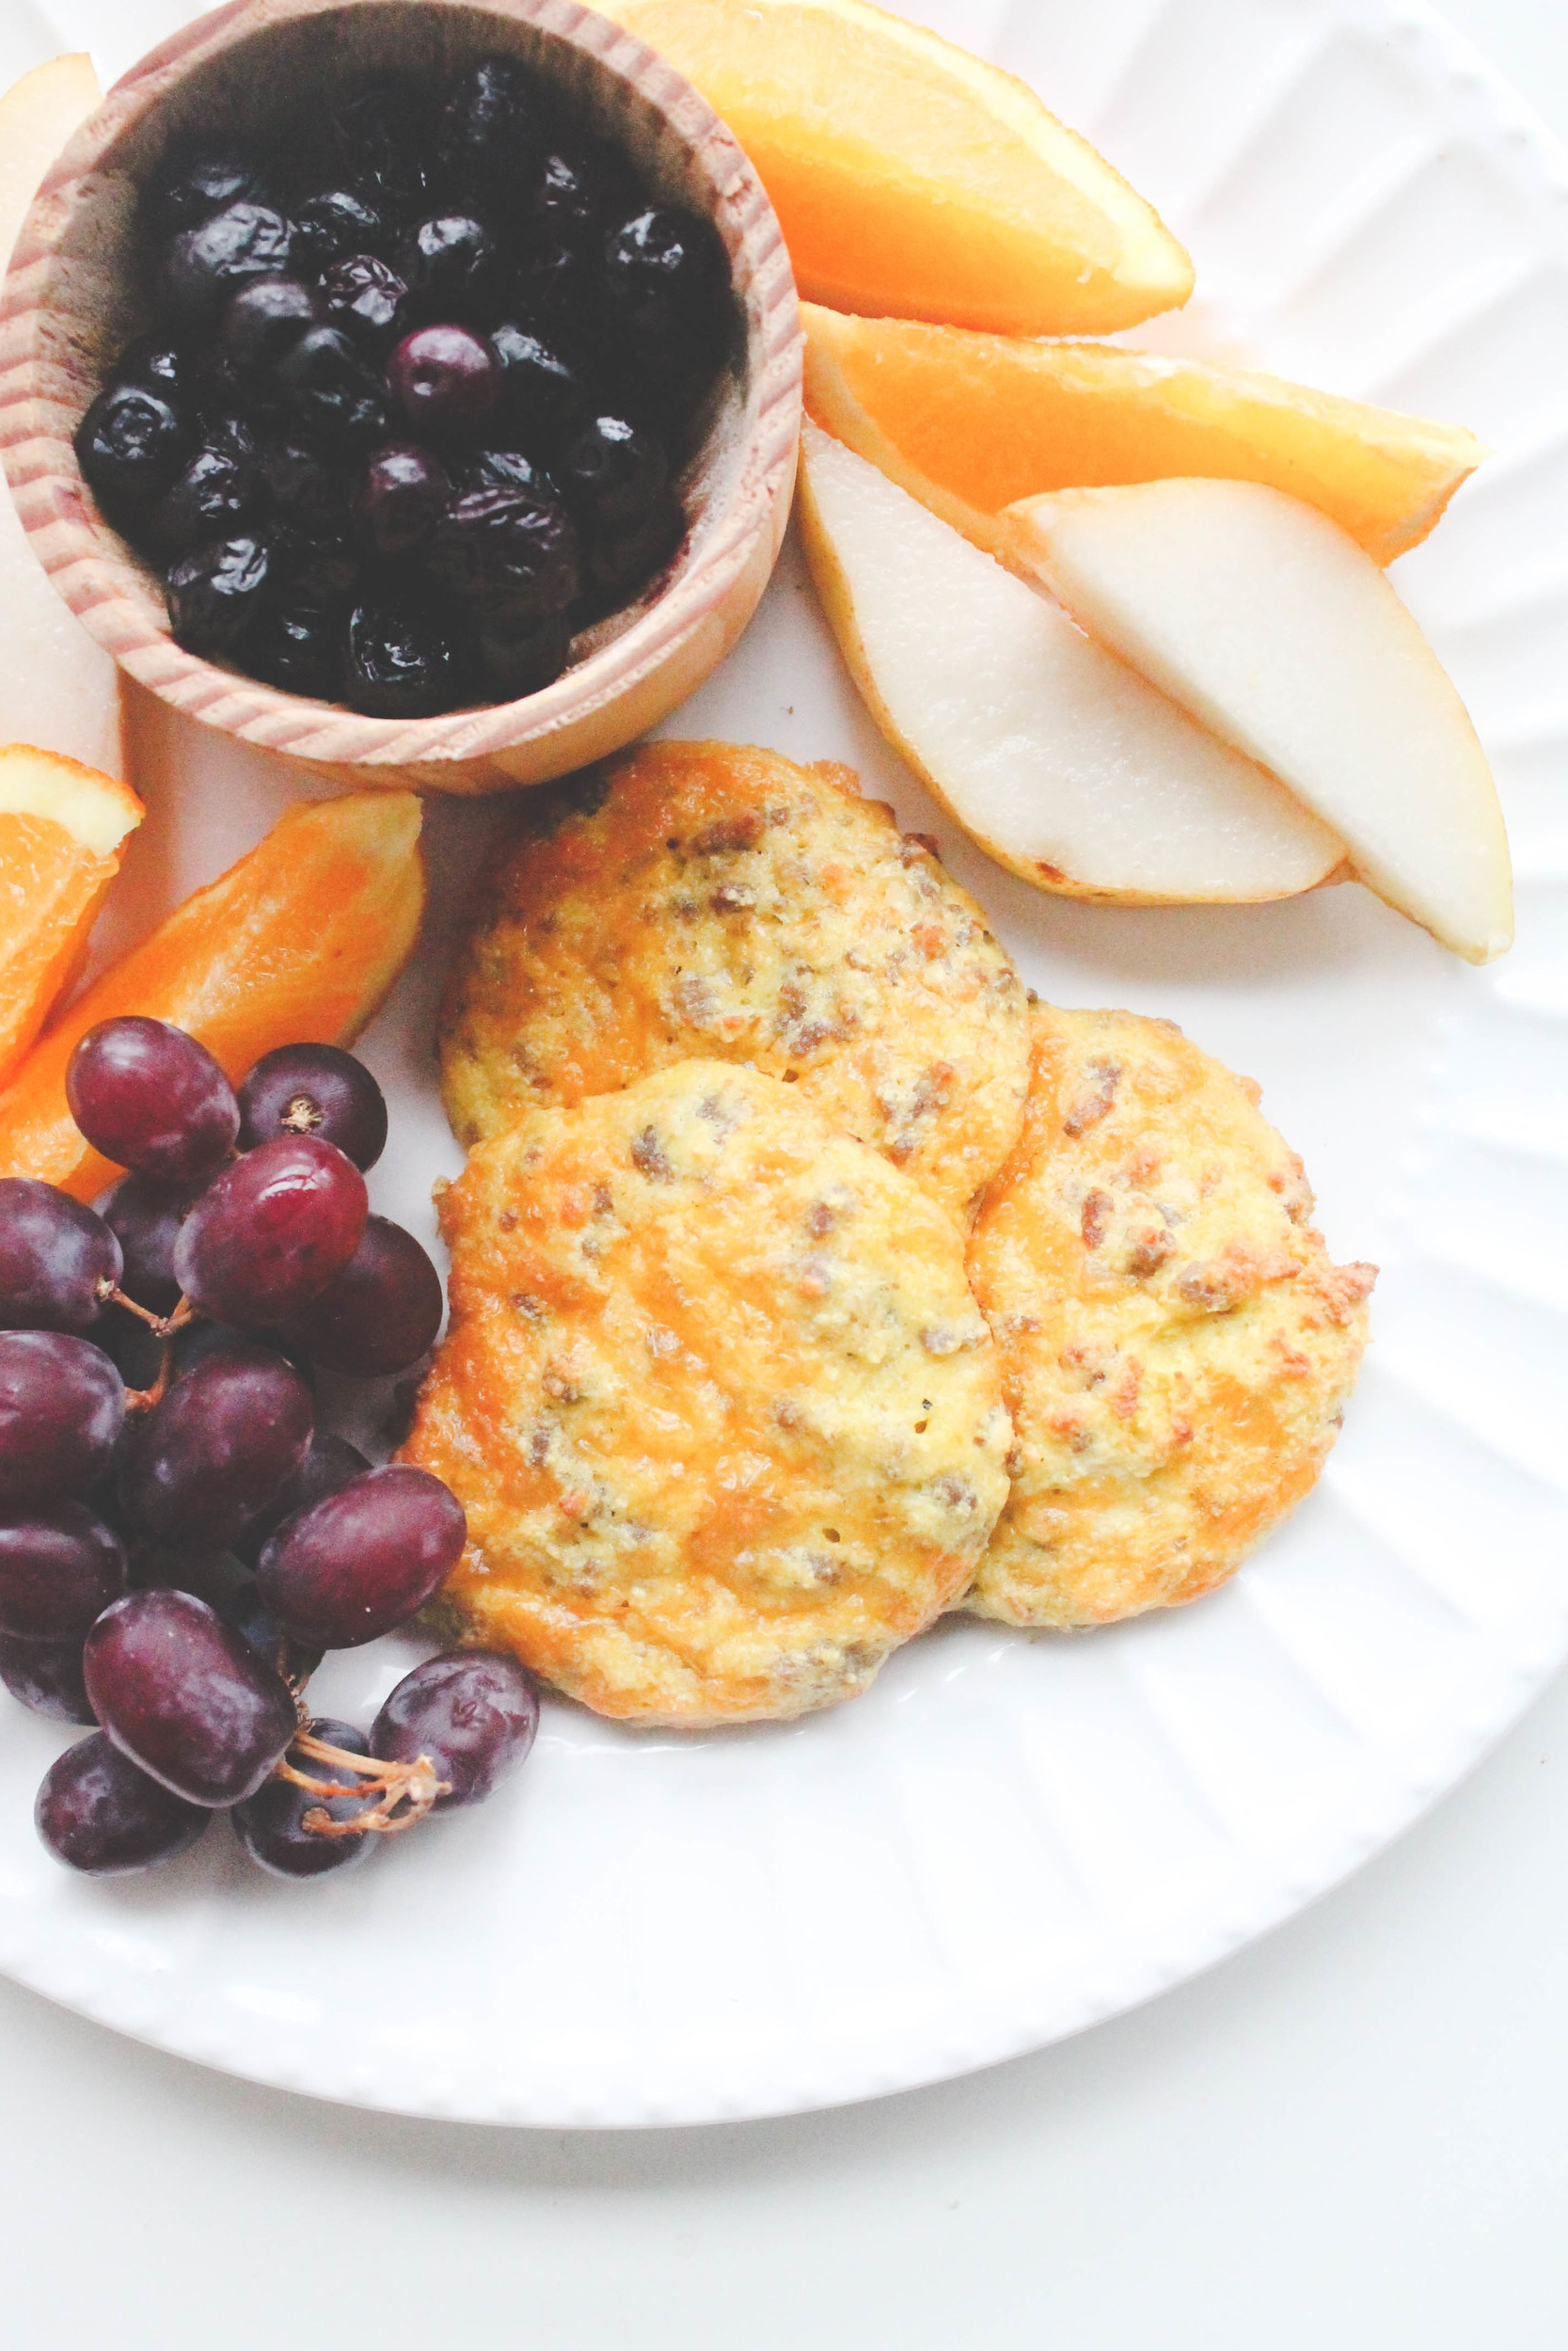 - These breakfast biscuits are a protein packed, gluten free and low carb meal. Easy to bulk cook, freezes well and perfect for those hectic mornings. Stuffed with sausage, egg and cheese, these biscuits are sure to keep you full until lunch.